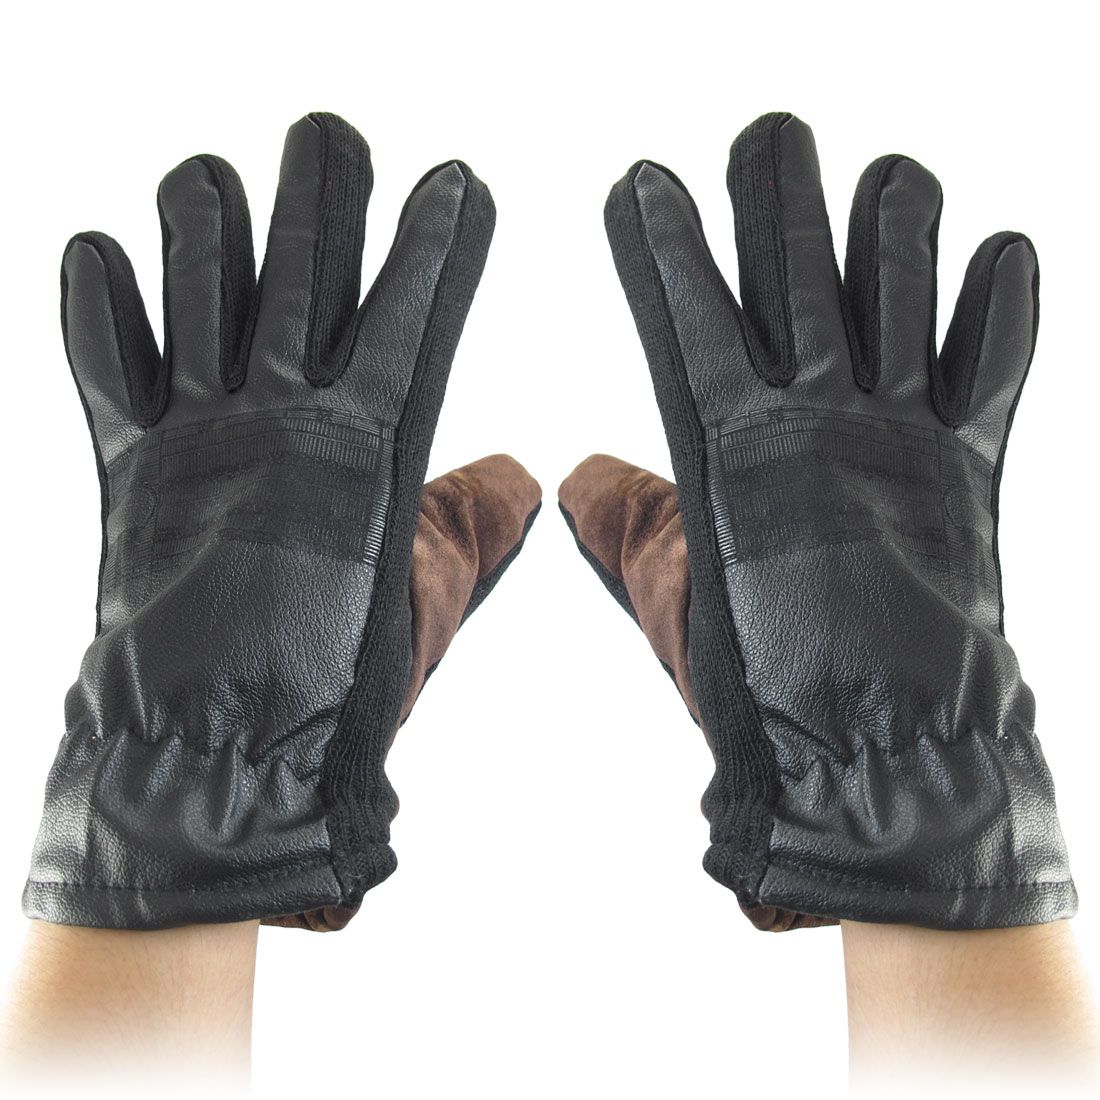 Knitted Rim Full Finger Winter Gloves Chocolate Black for Men